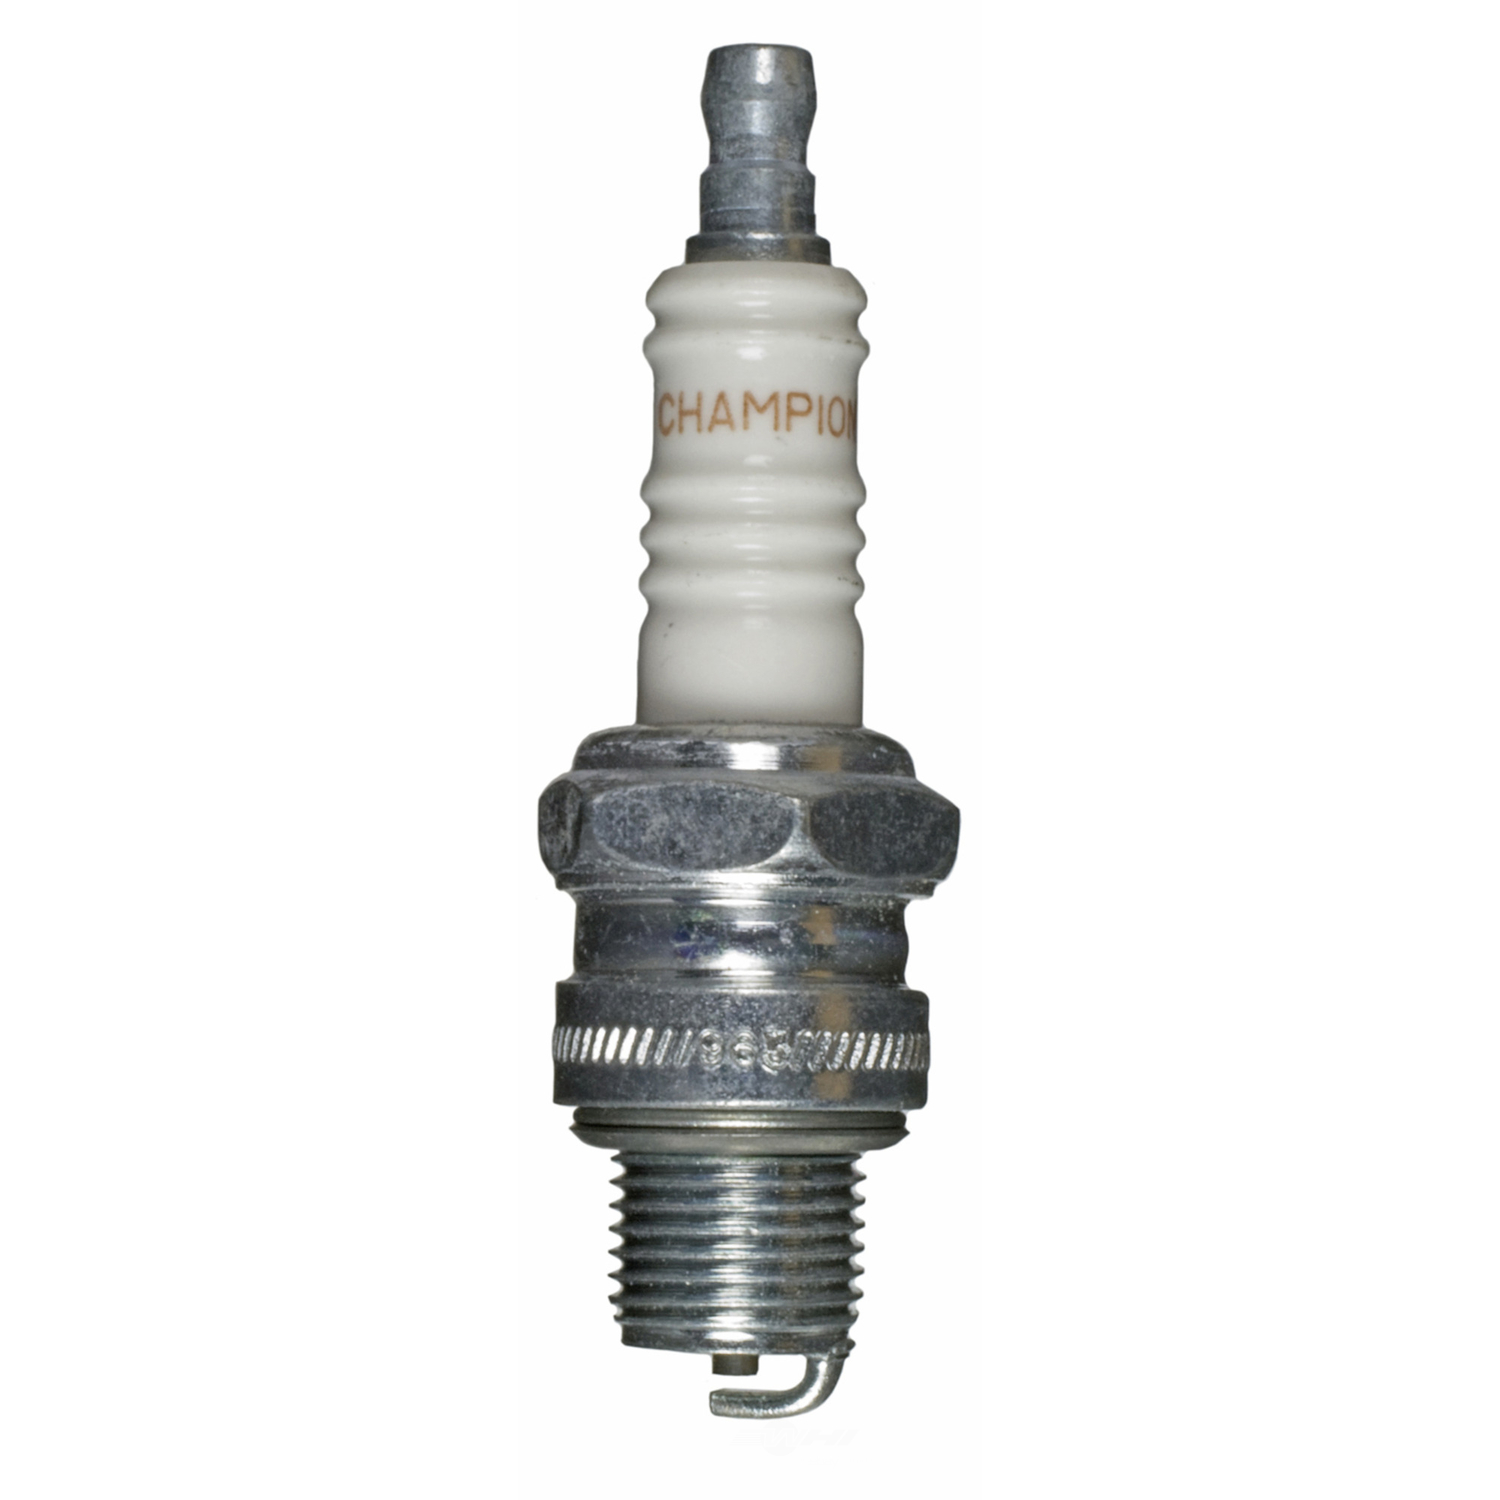 CHAMPION SPARK PLUGS - Copper Plus Spark Plug - CHA 807